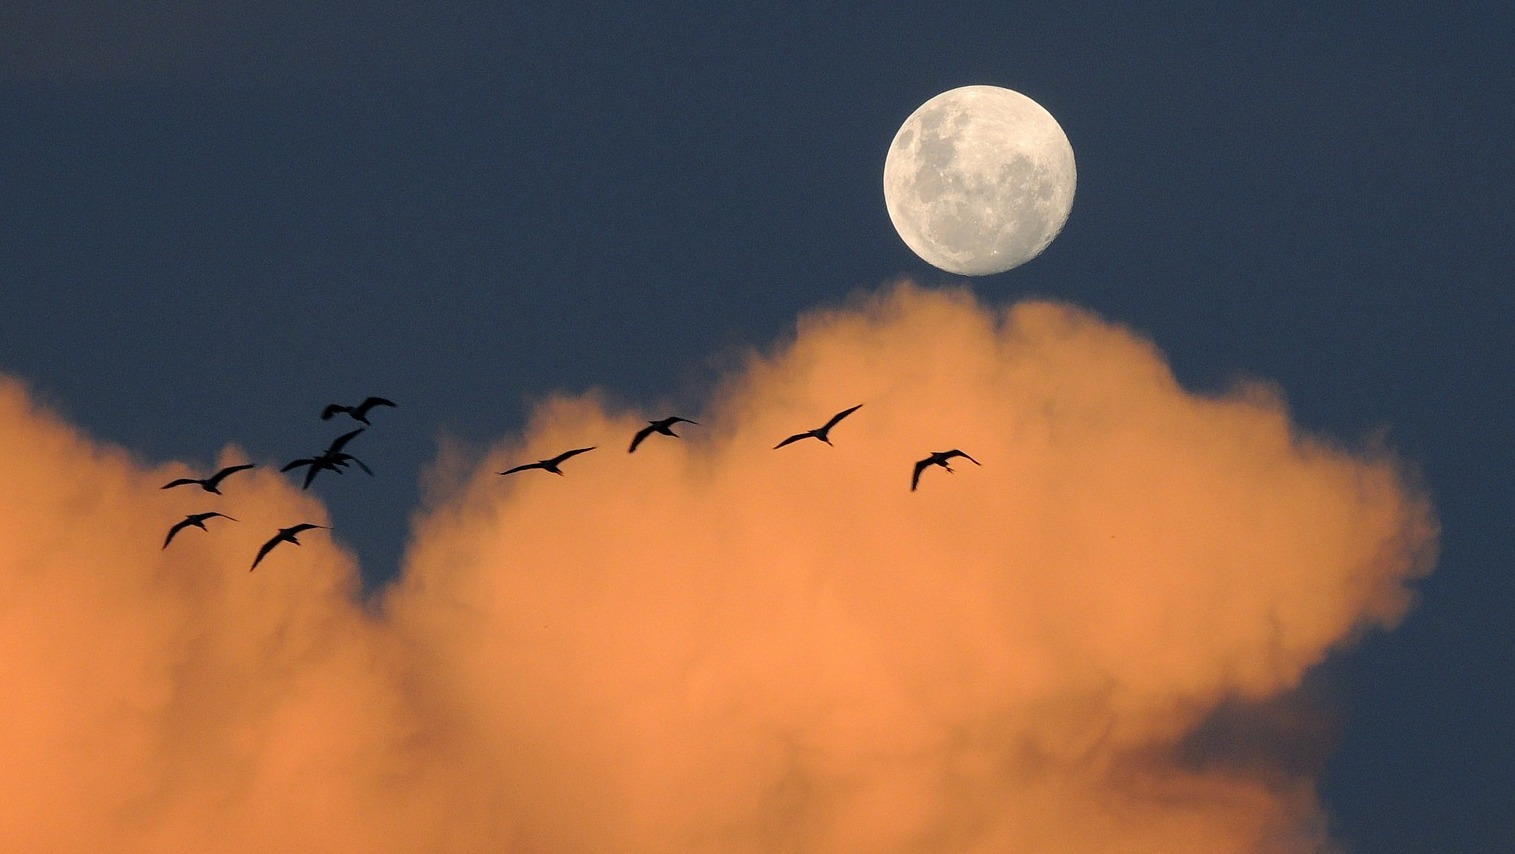 Image: Birds flying in front of a full moon